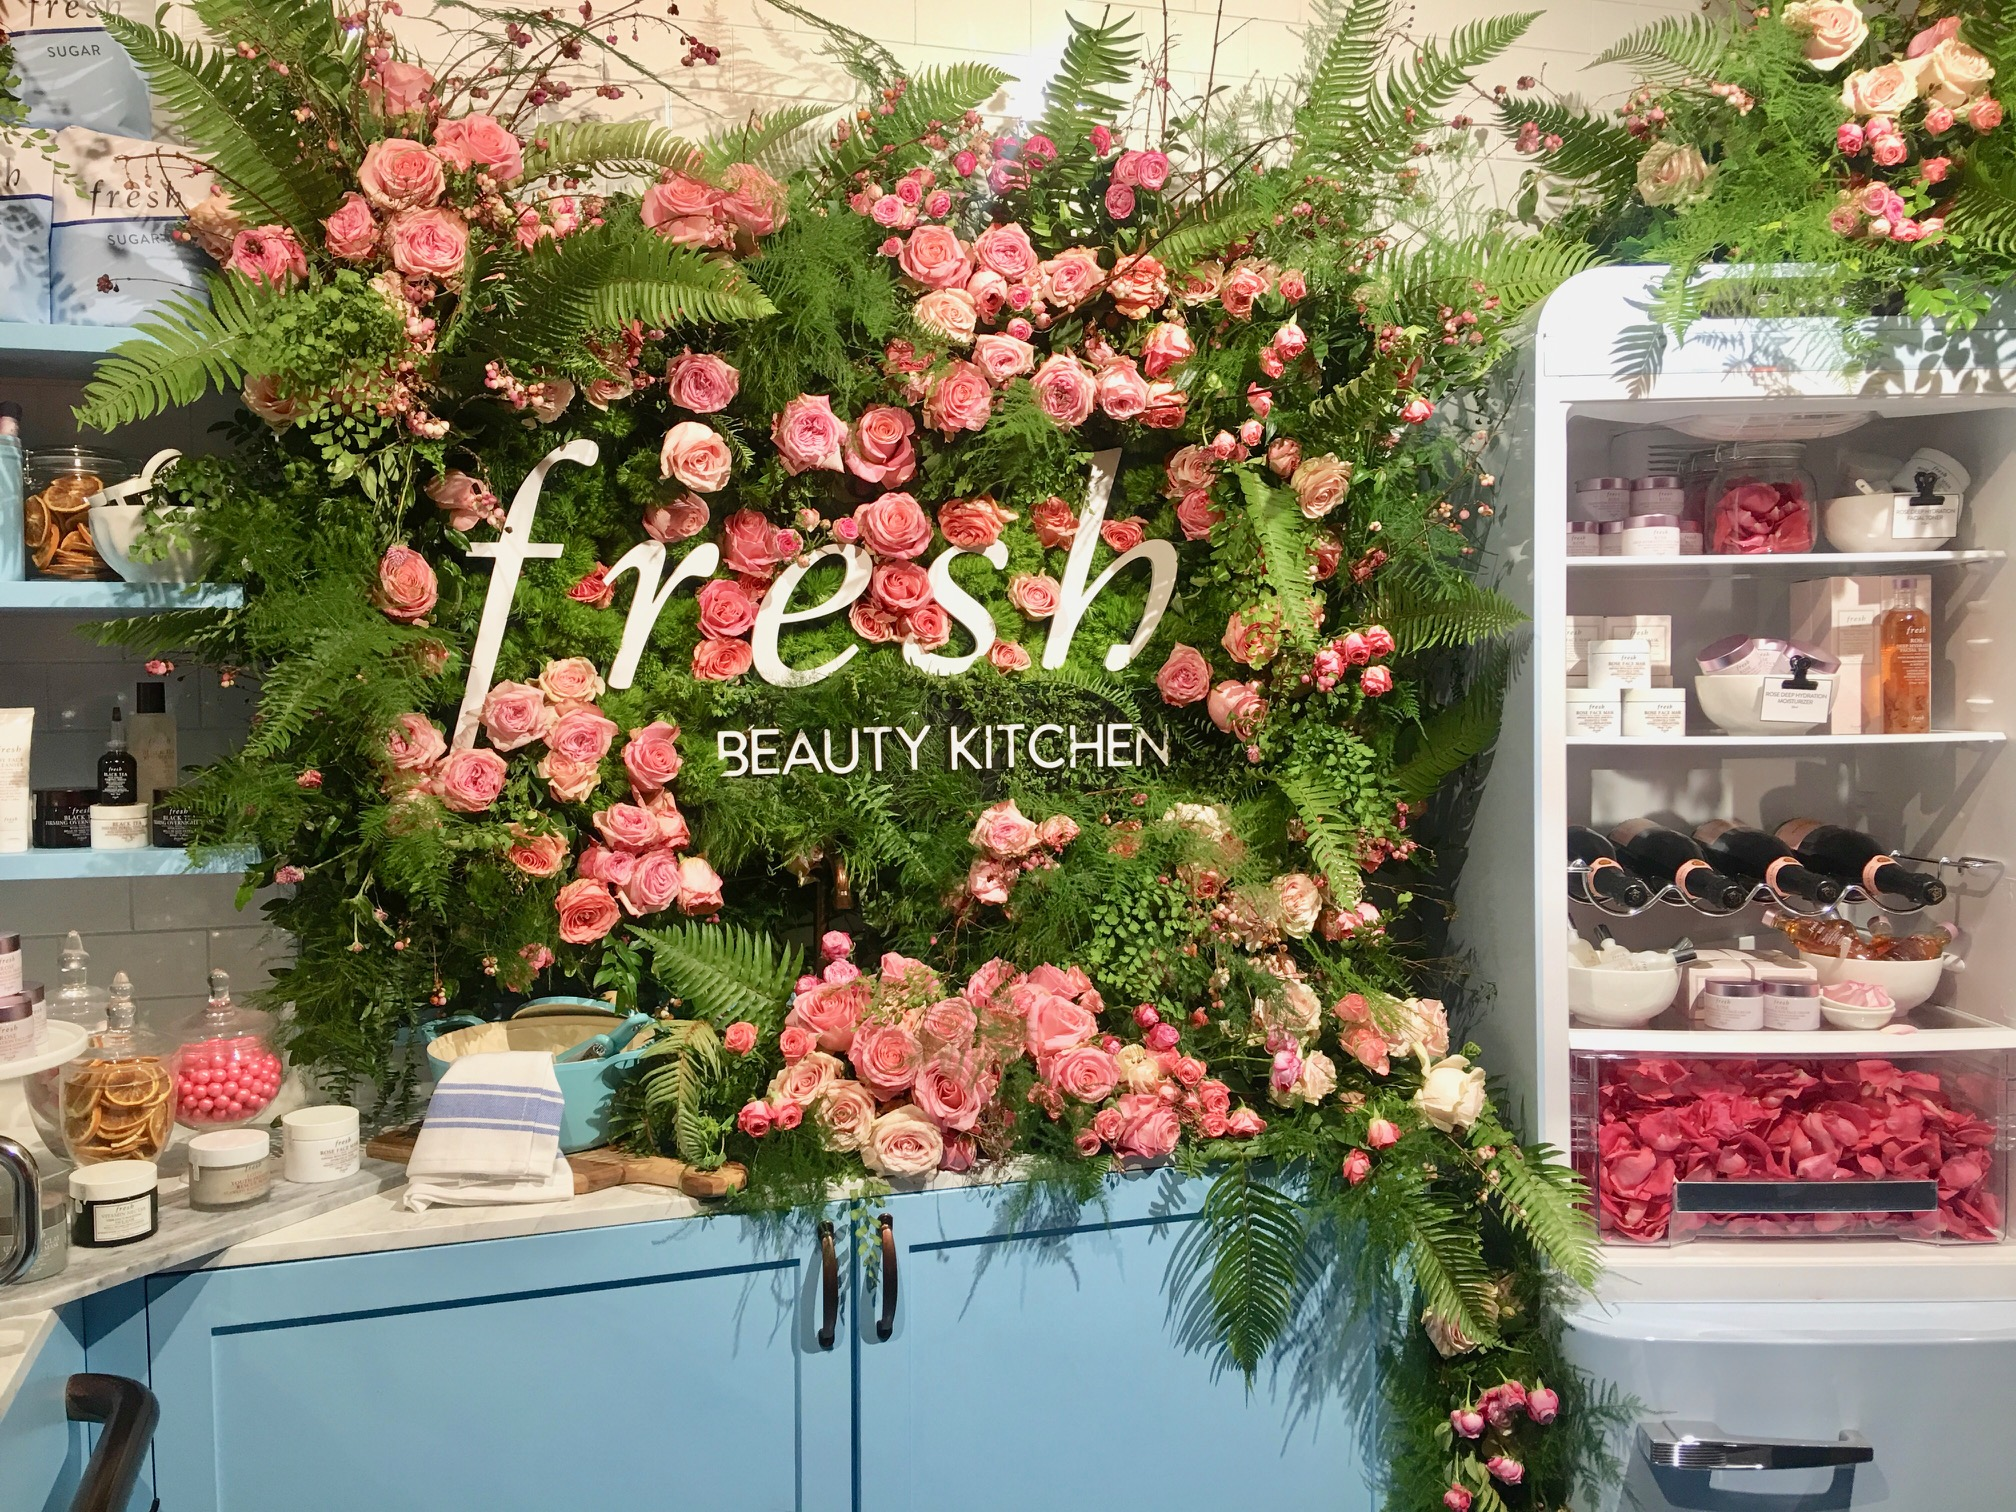 The perfect kitchen by Fresh